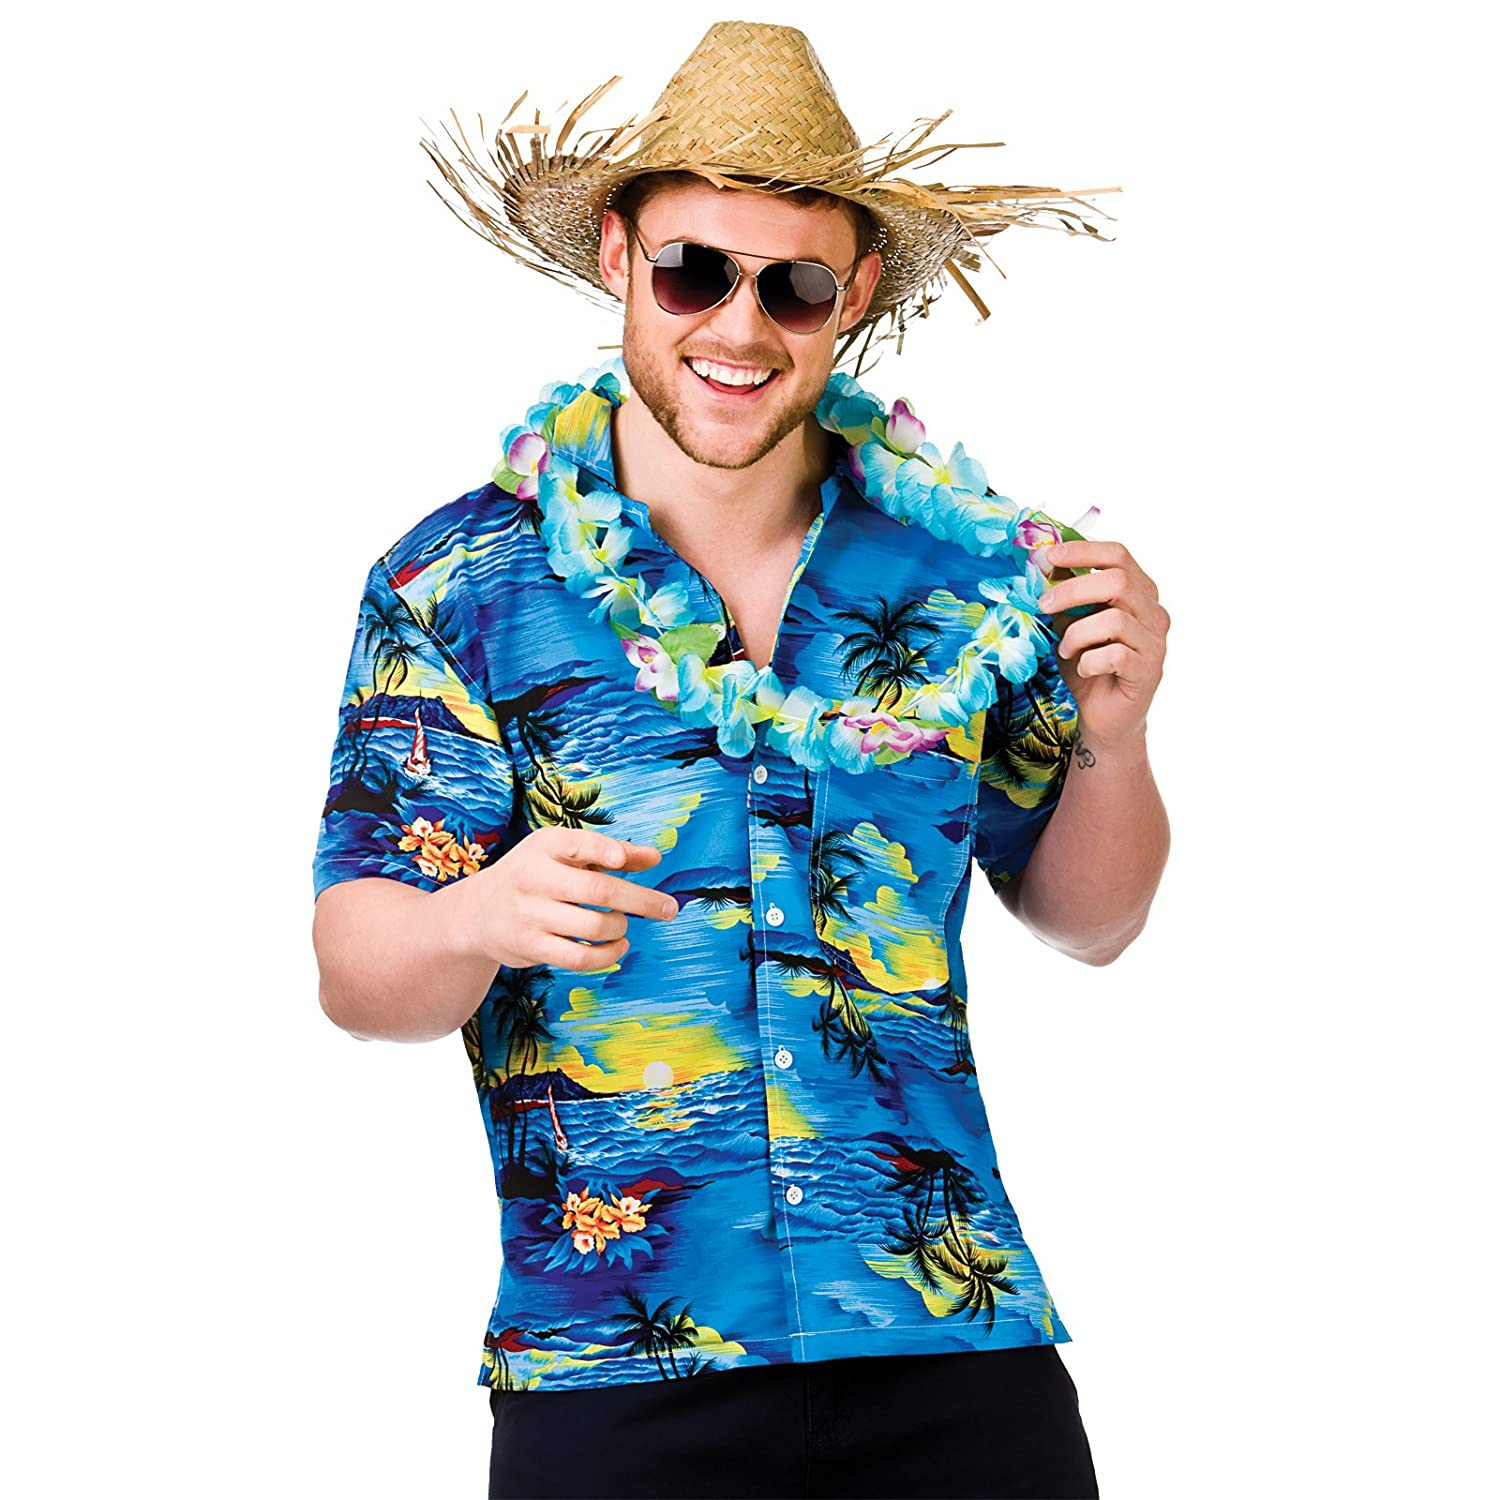 Hawaiian Shirt (Blue Palm Trees) - Adult Accessory Man: S (37\